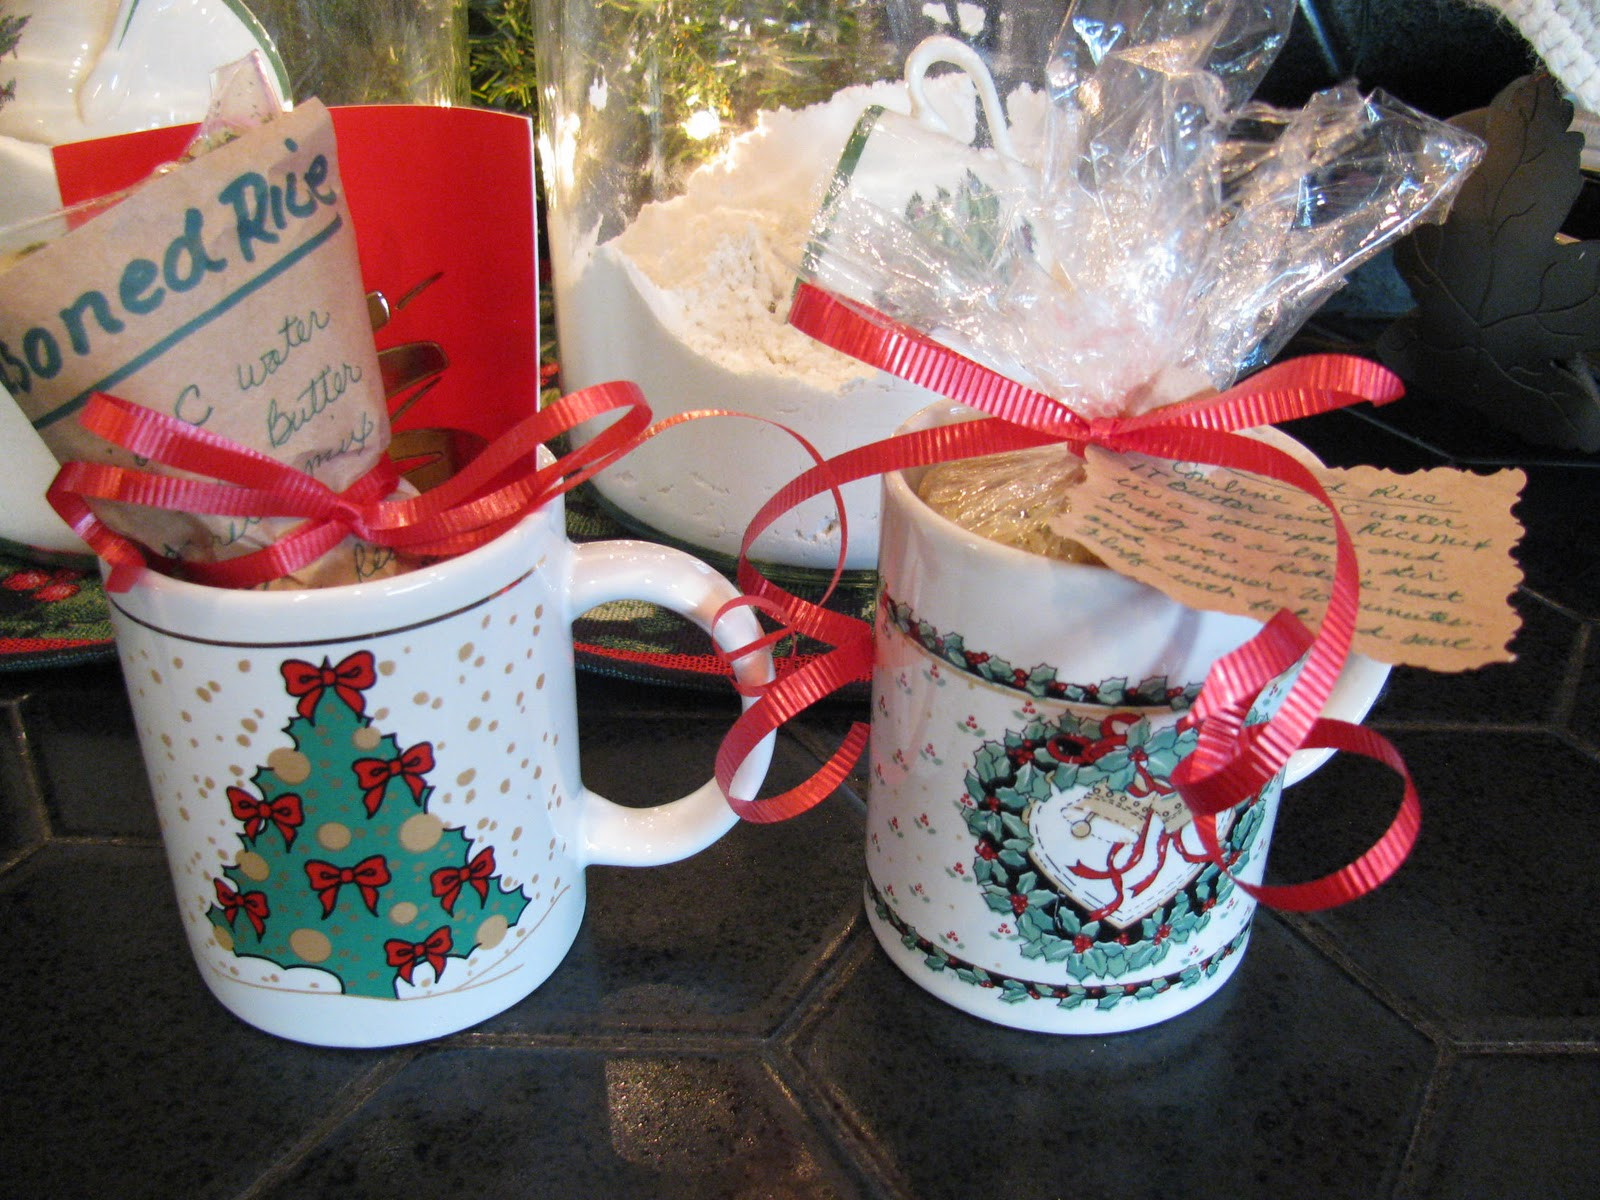 Best ideas about Christmas Mug Gift Ideas . Save or Pin MAY DAYS Christmas Mug Gifts Now.